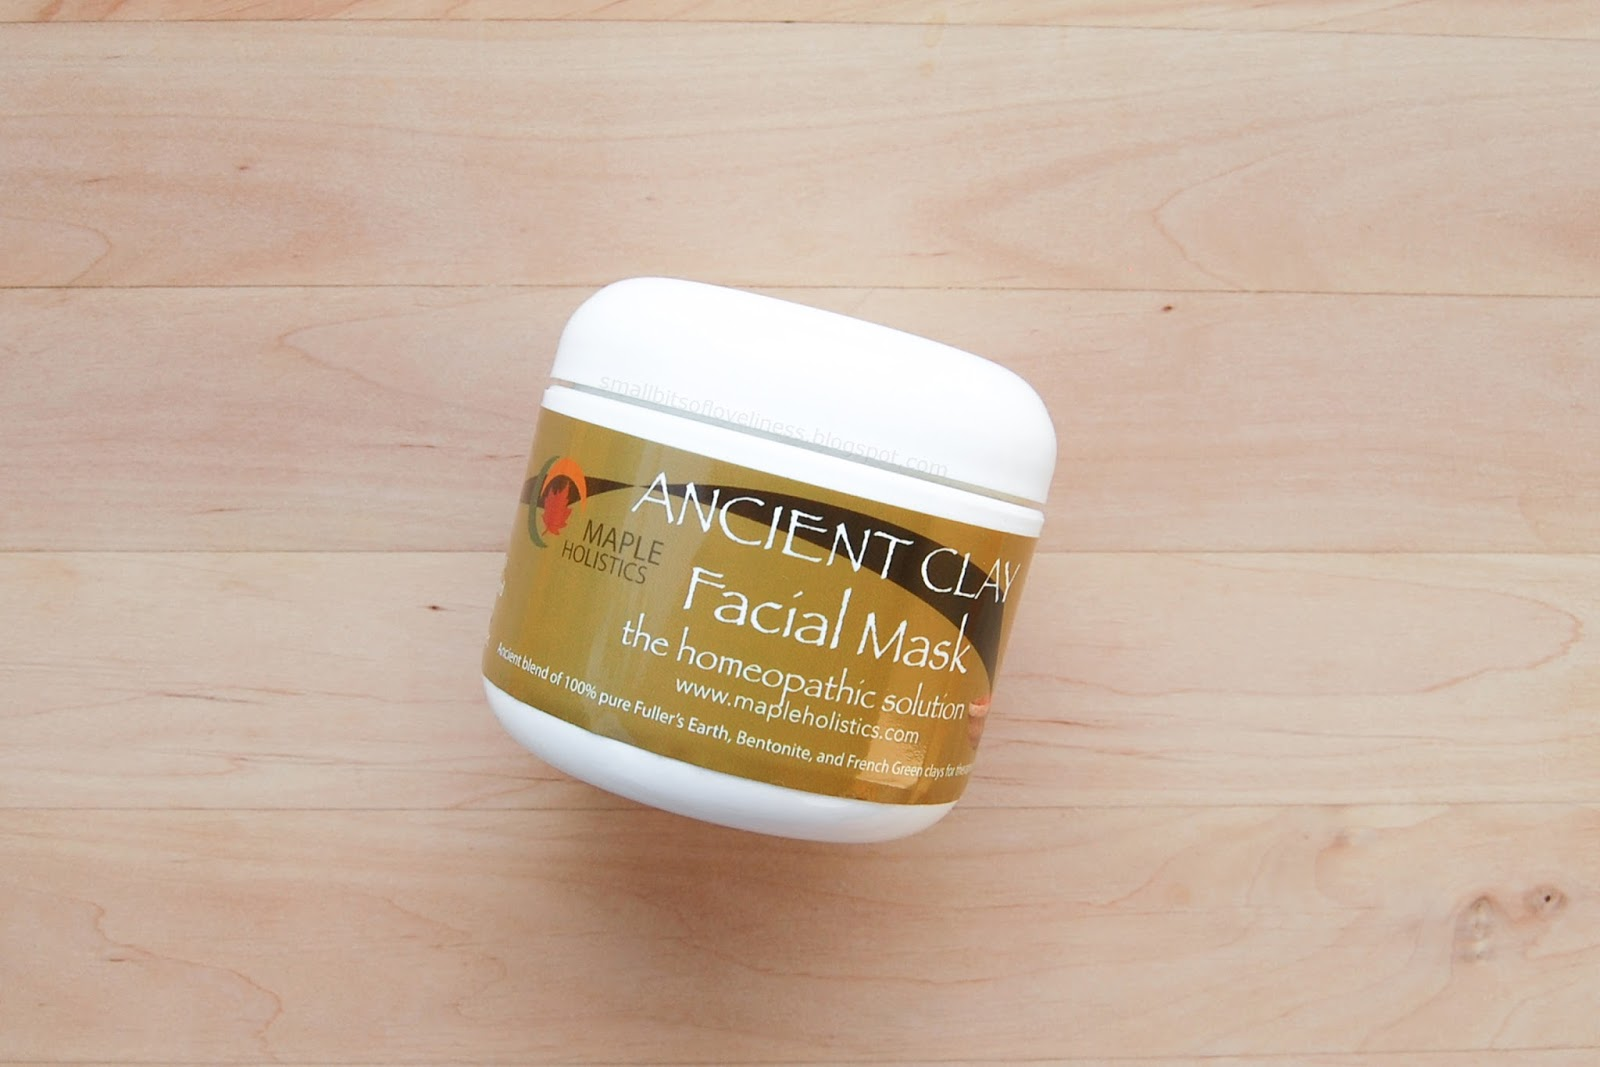 Maple Holistics Ancient Clay Facial Mask